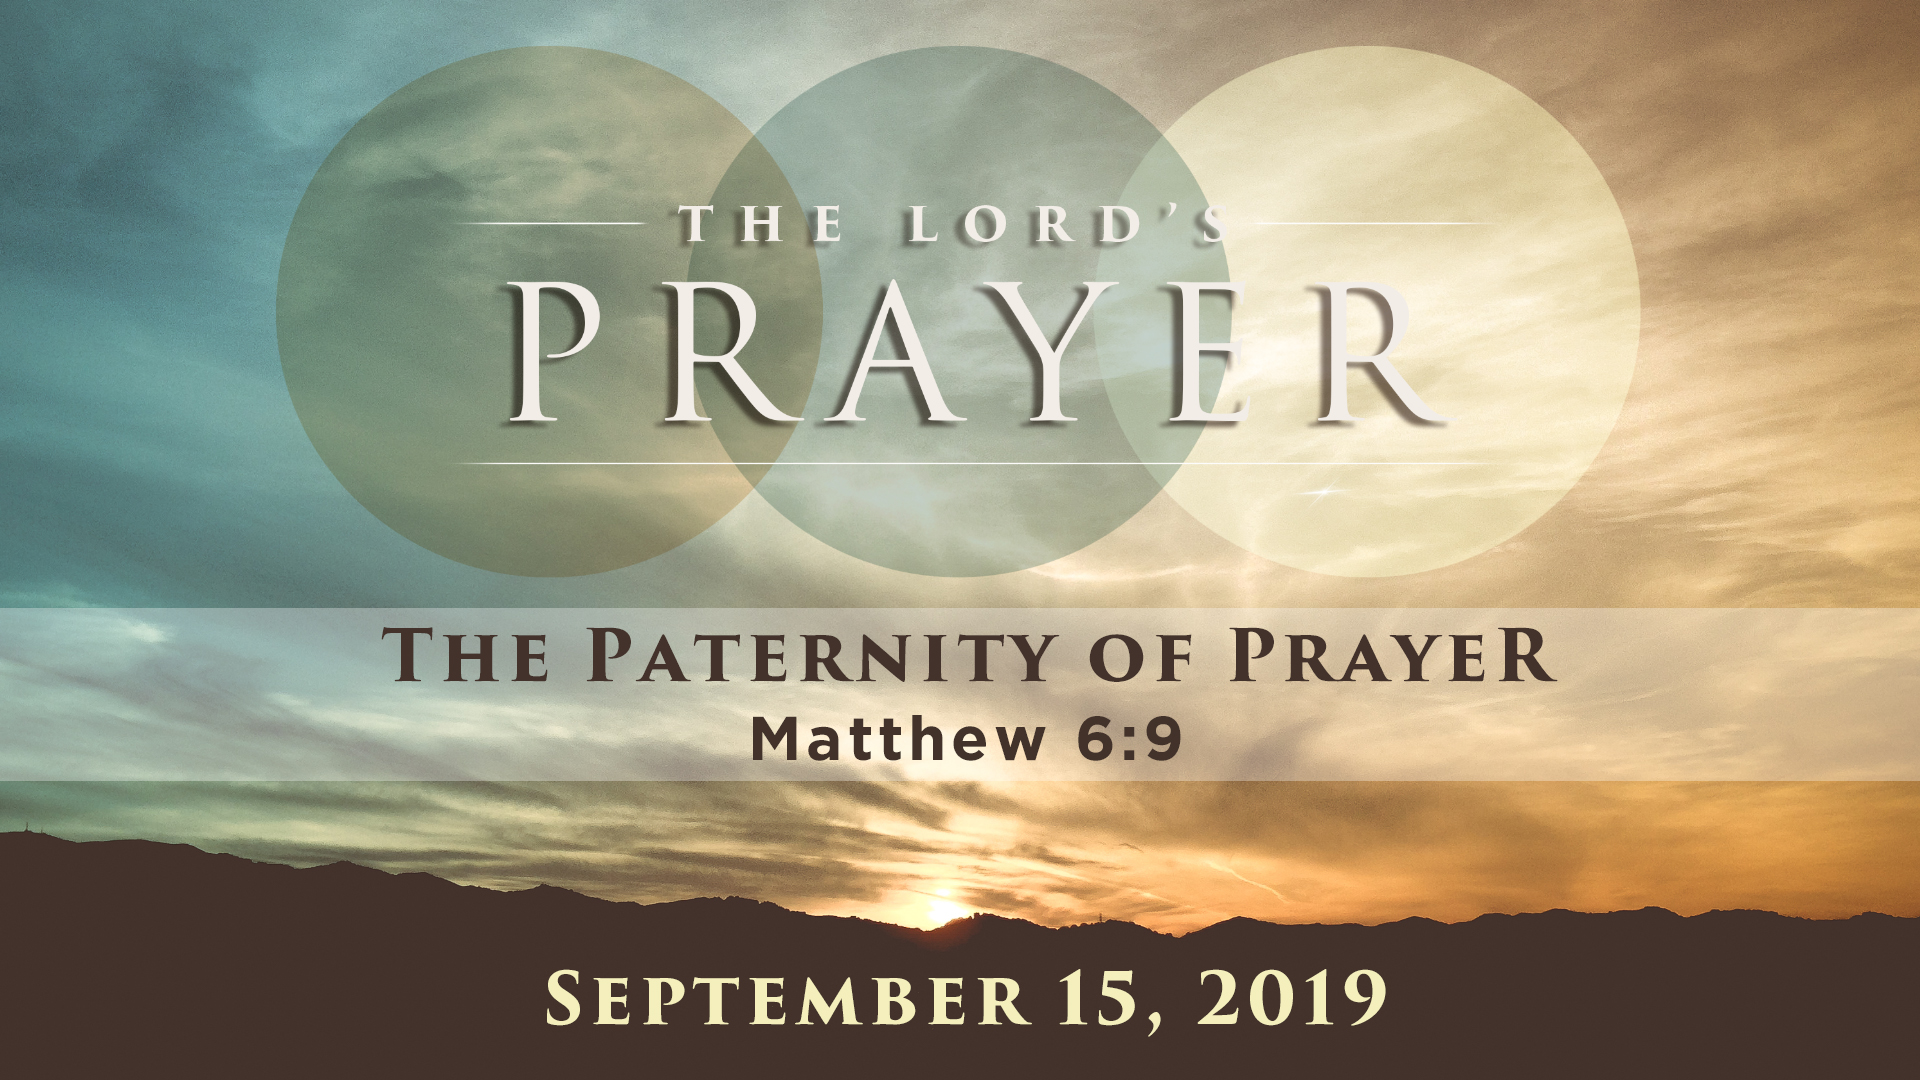 The Lord's Prayer: The Paternity of Prayer